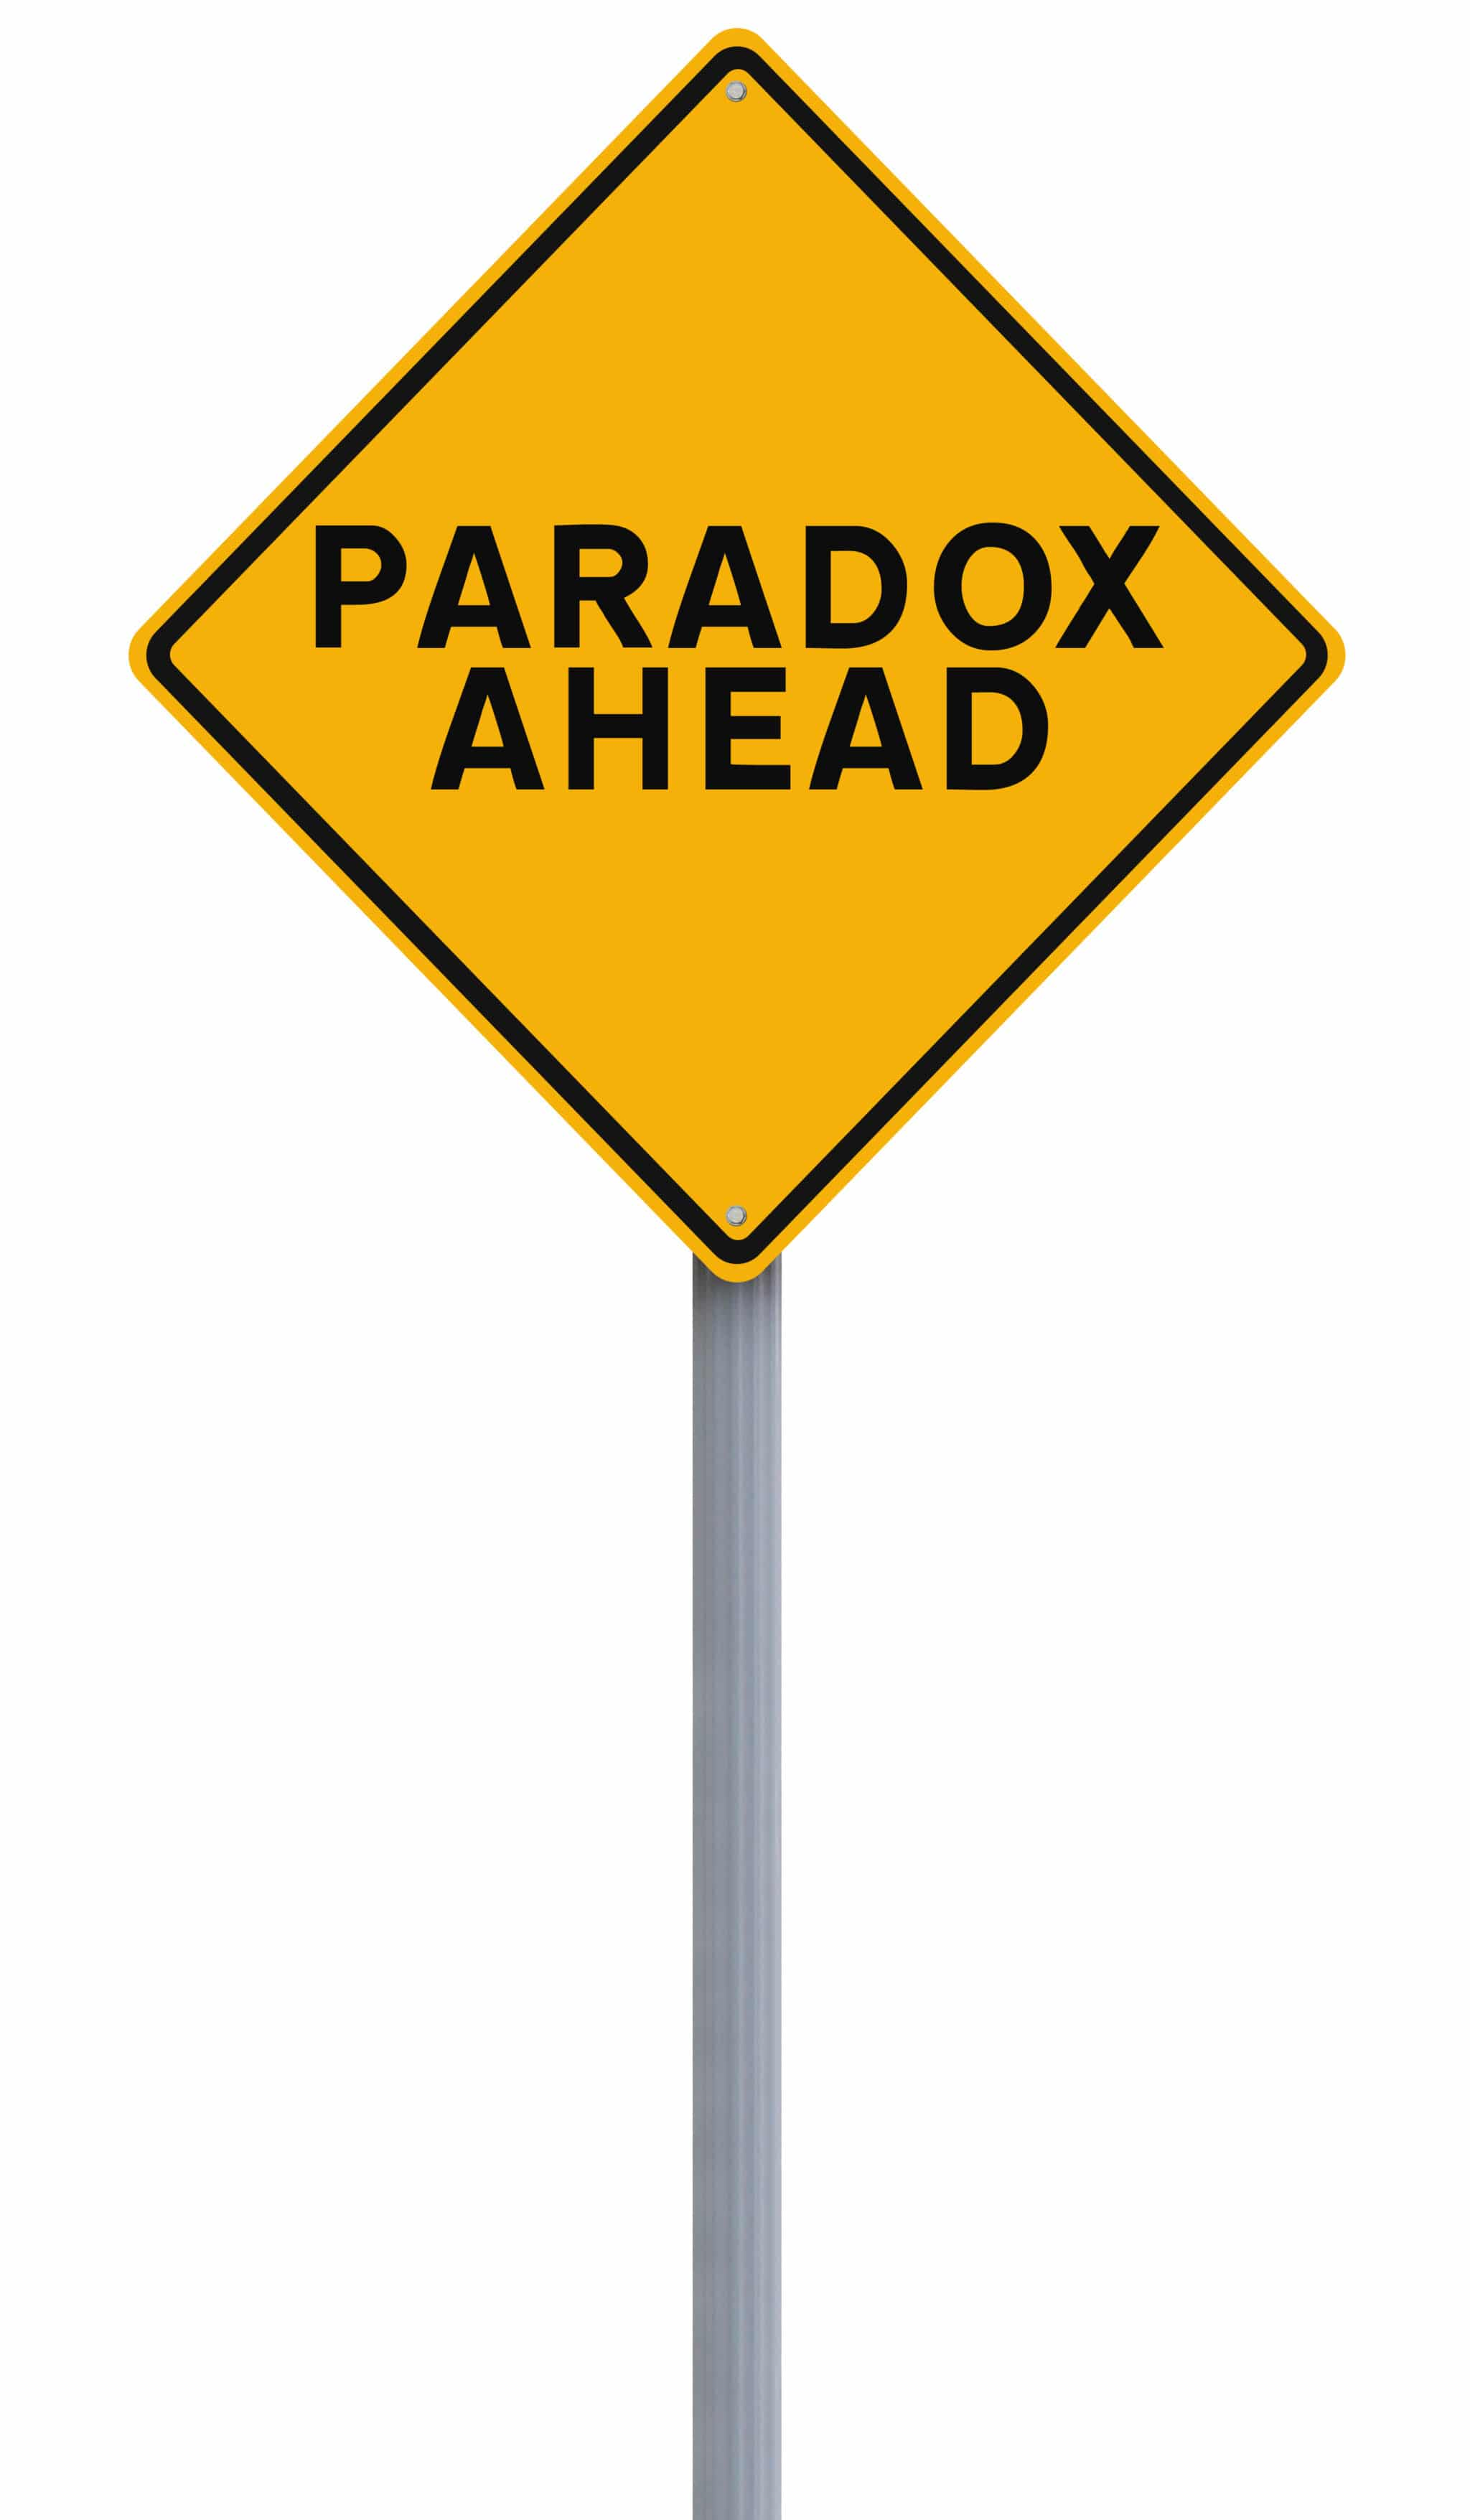 Leadership speaker and author, Bob Vanourek, uses this picture of a paradox ahead sign to show paradoxes in leadership.